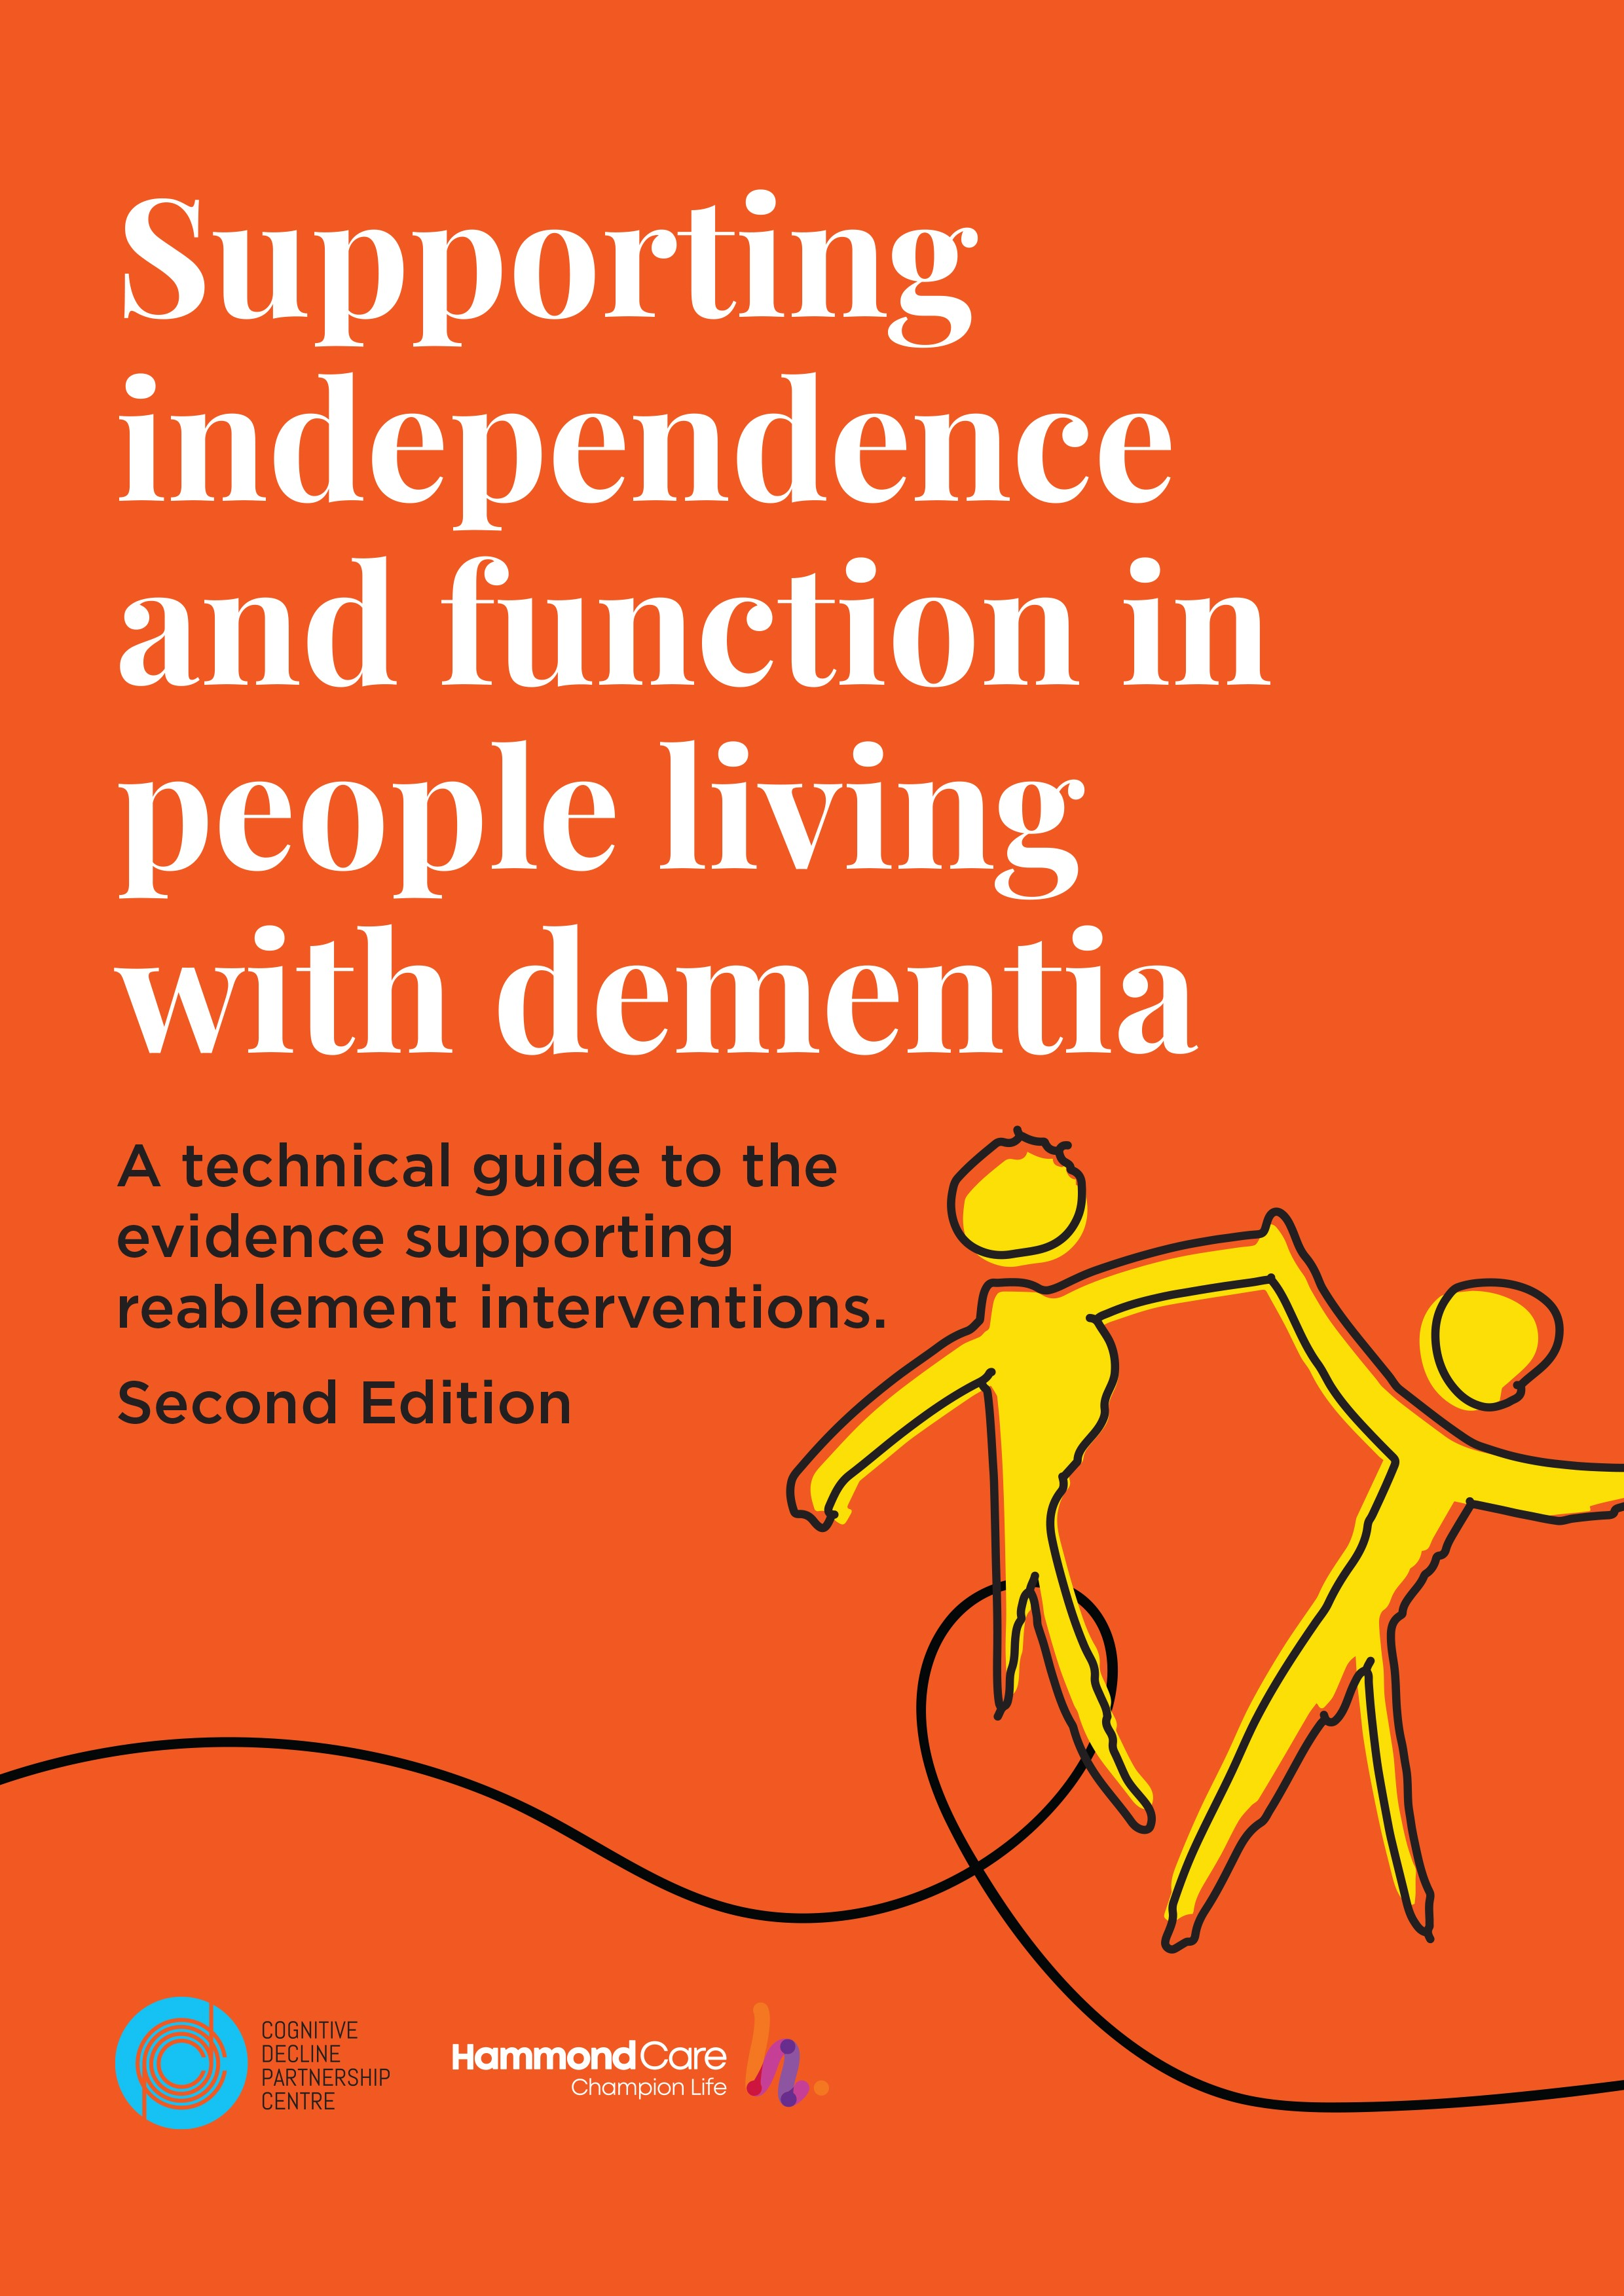 Technical guide cover